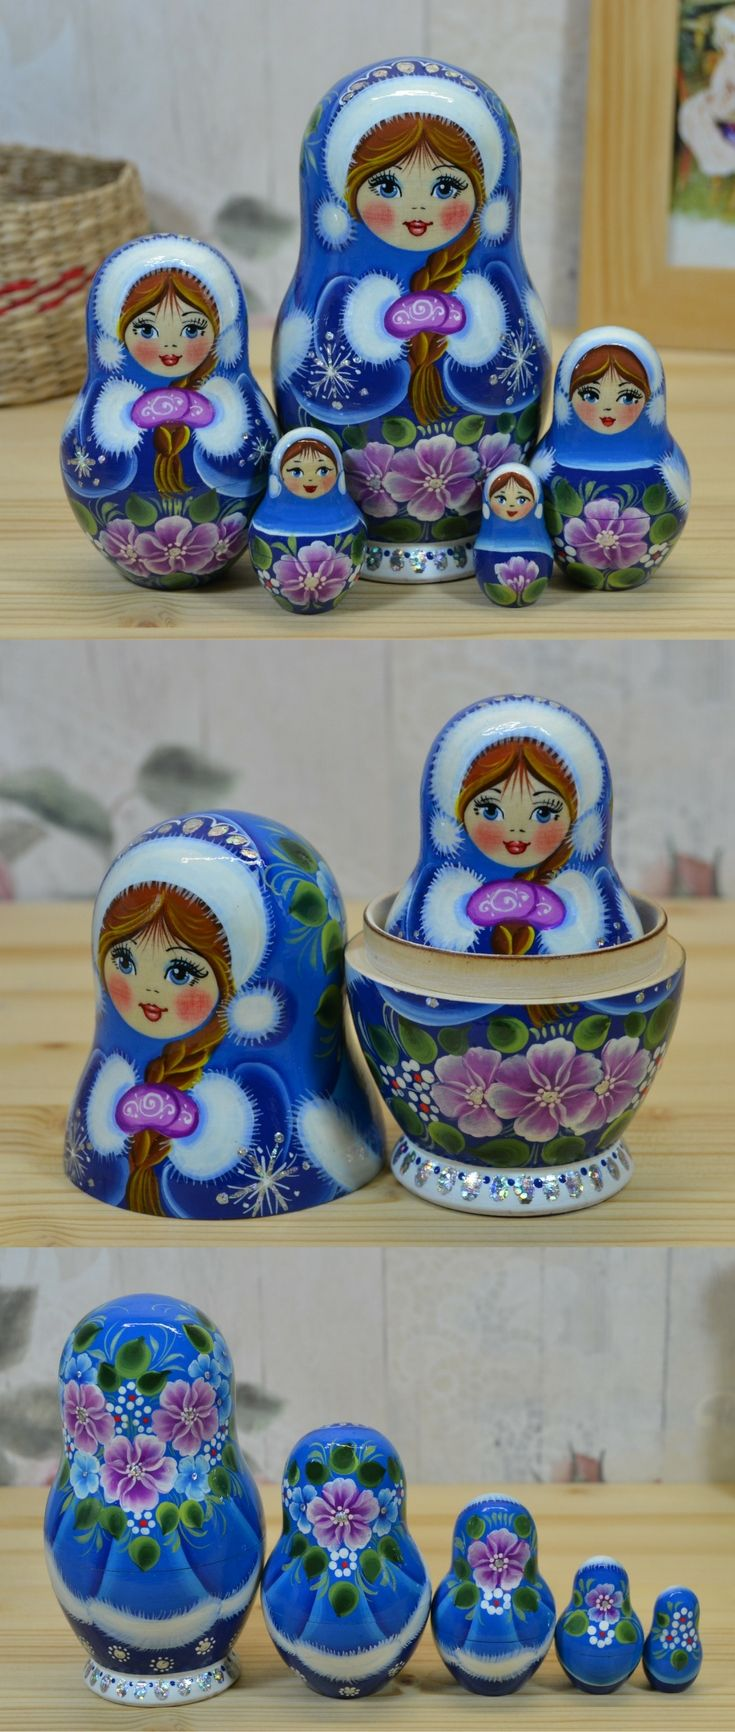 russian matryoshka doll in blue winter attire